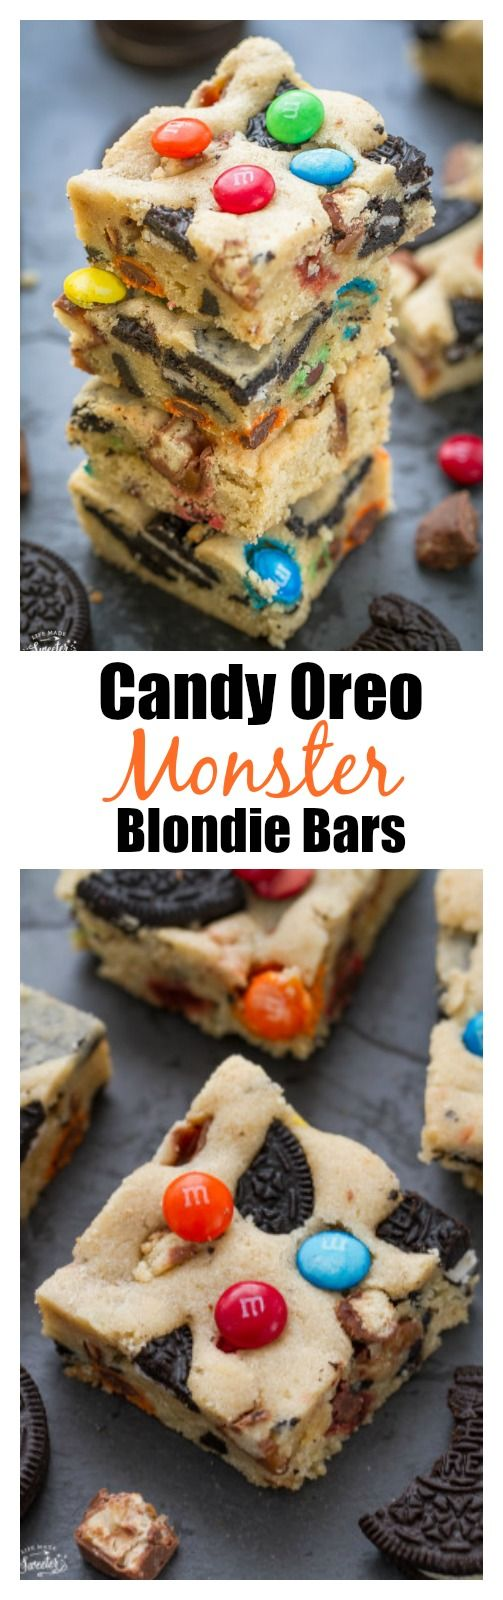 Candy Oreo Monster Blondie Bars are loaded with M&M's, chopped Twix & Oreo cookies. Soft, chewy & perfect for using up leftover Halloween candy!